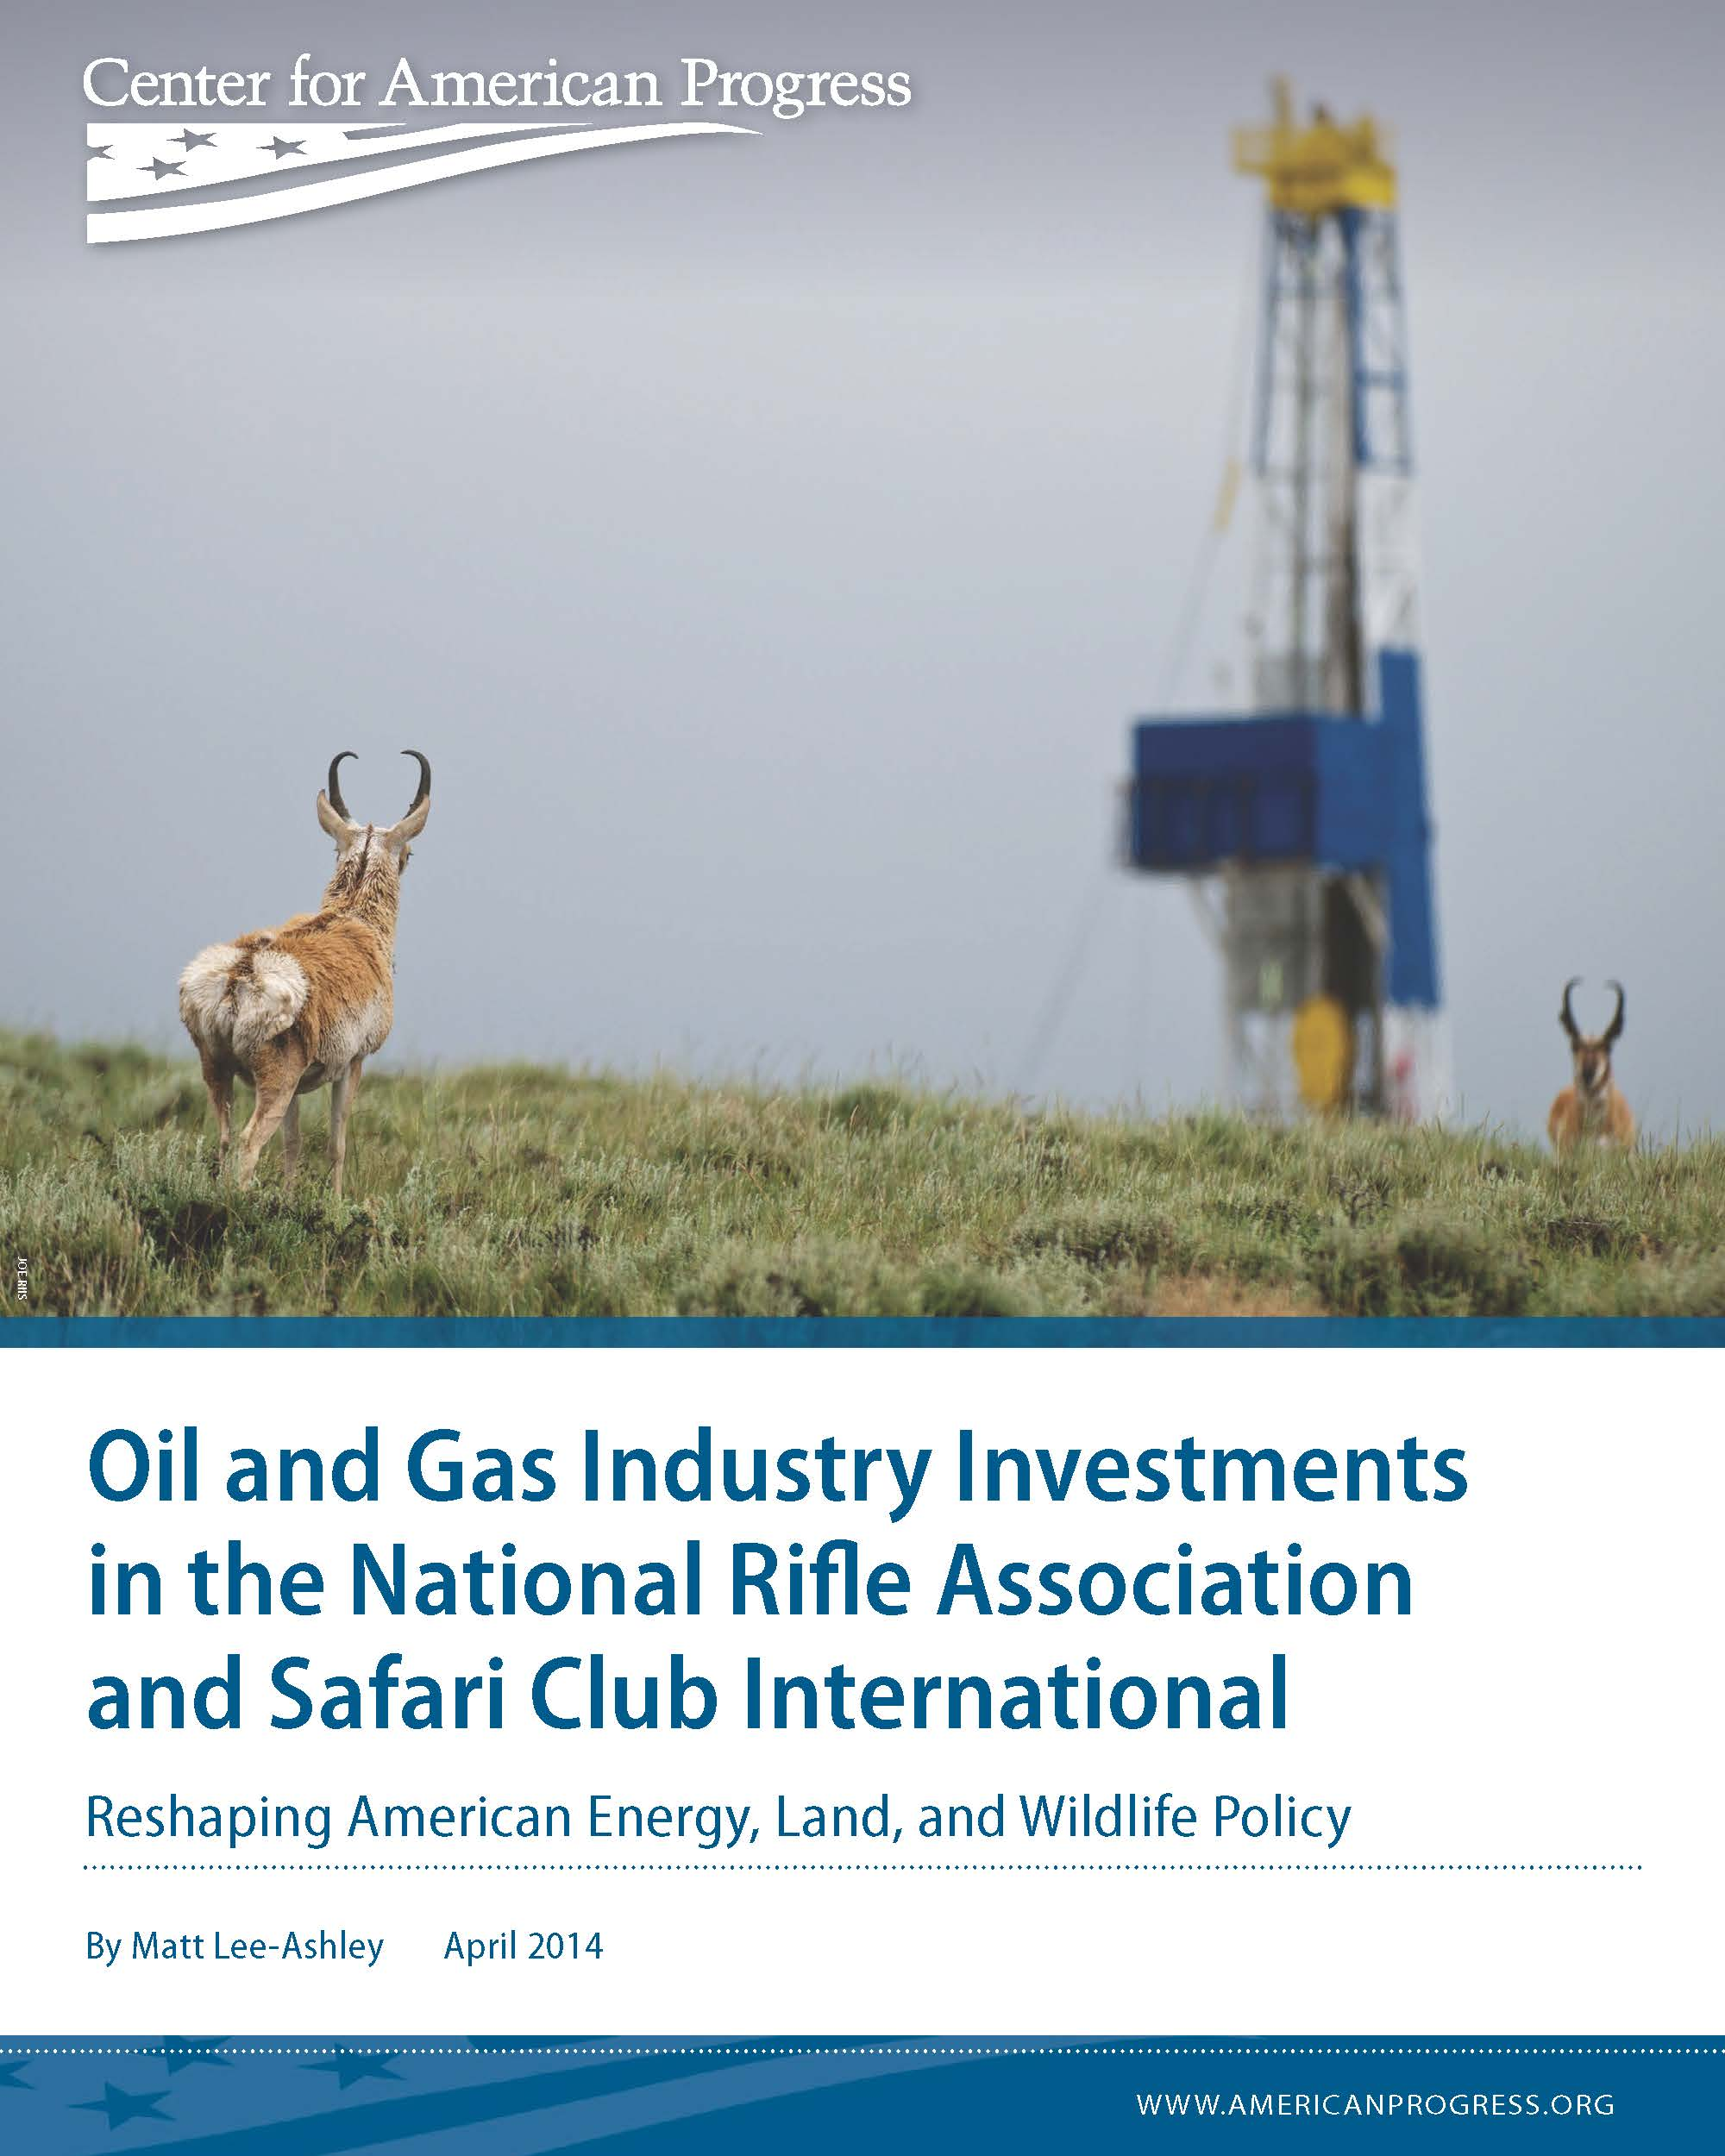 Oil and Gas Industry Investments in the National Rifle Association and Safari Club International